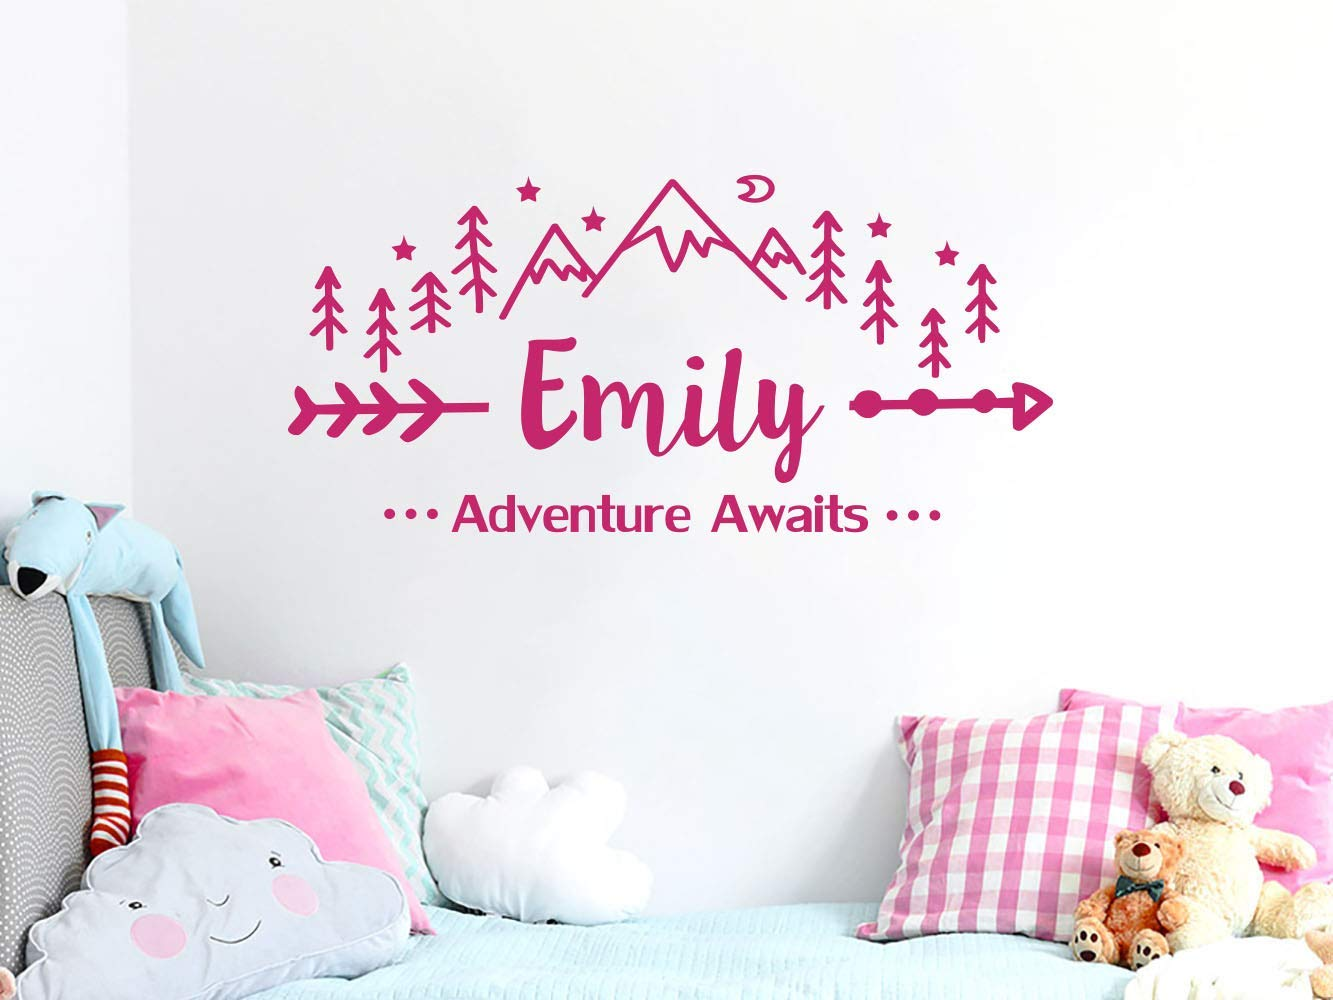 Girls Name Wall Decal Adventure Awaits - Mountain Nursery Wall Decal - Adventure Awaits Arrow Vinyl Stickers - Mountain Wall Decor - Girls Custom Name - Girls Name Stickers C696